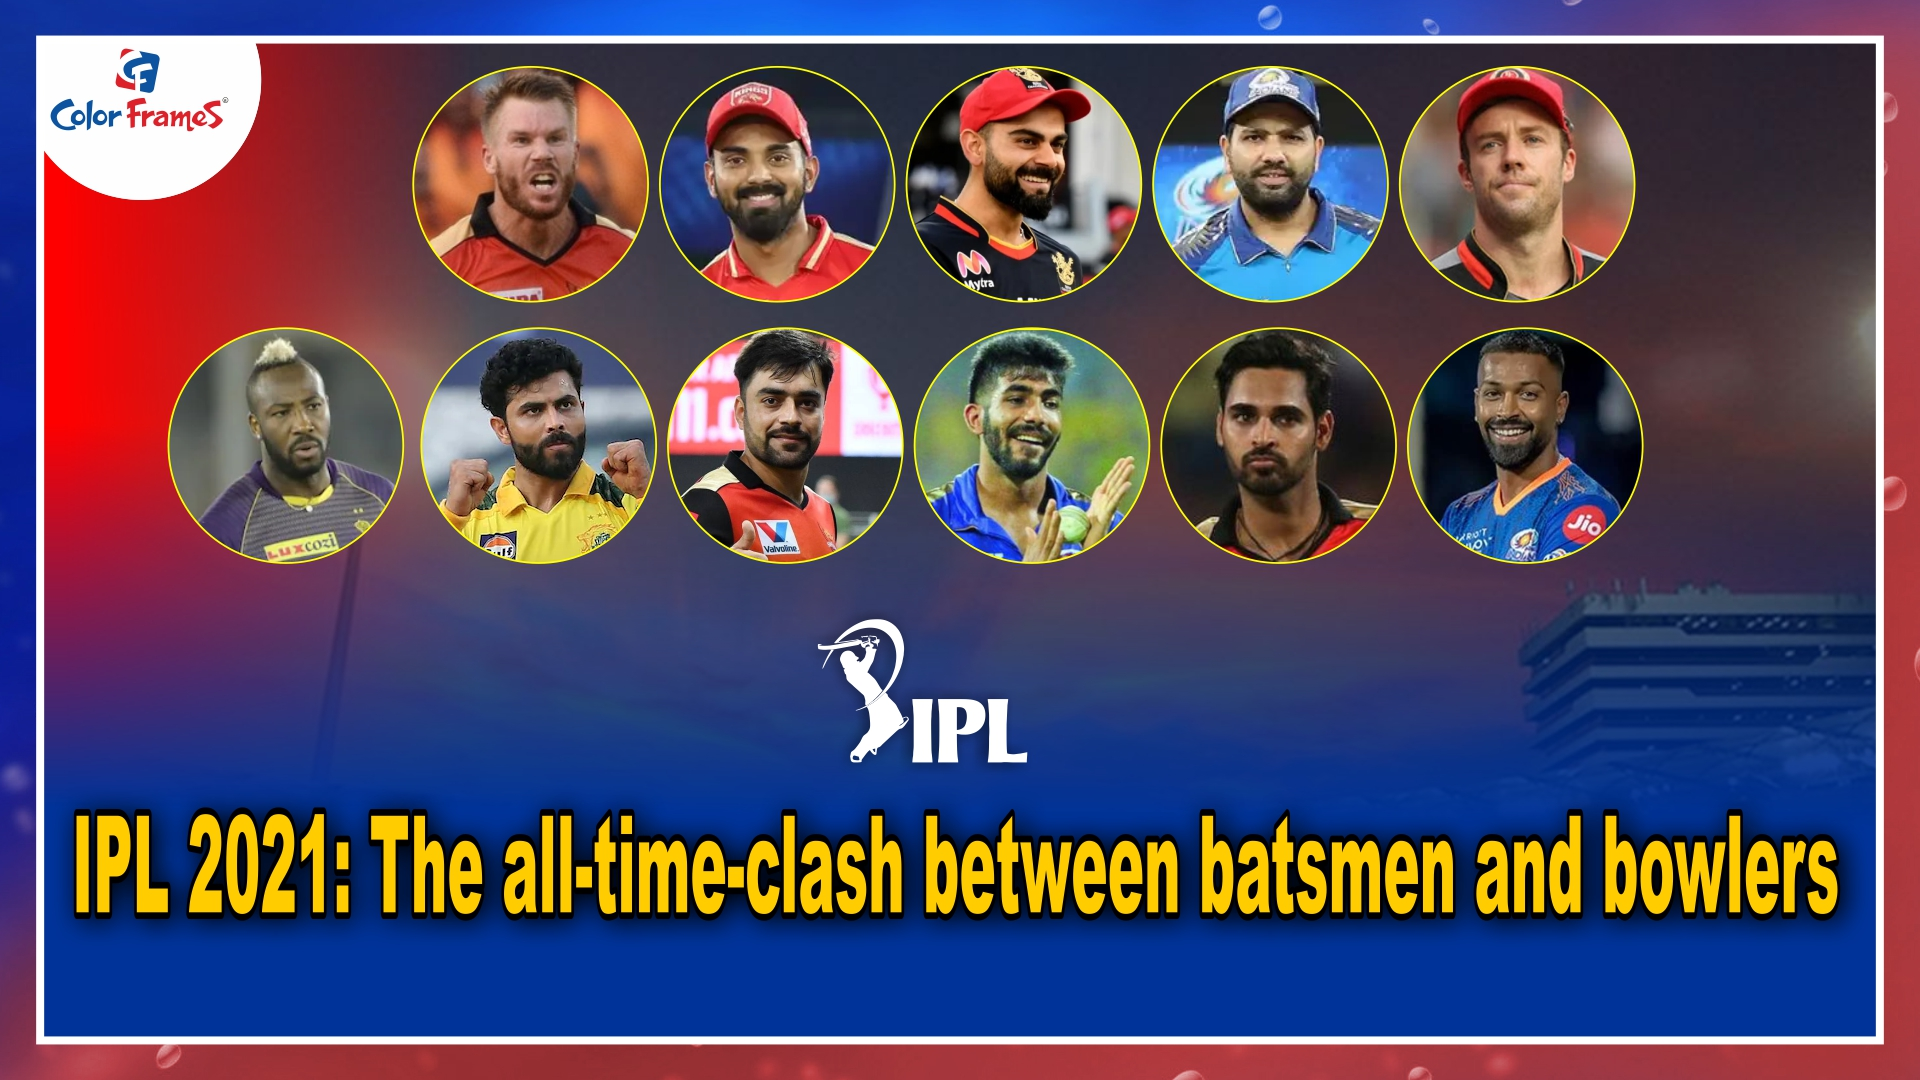 IPL 2021: 5 player battles to watch out for in the tournament